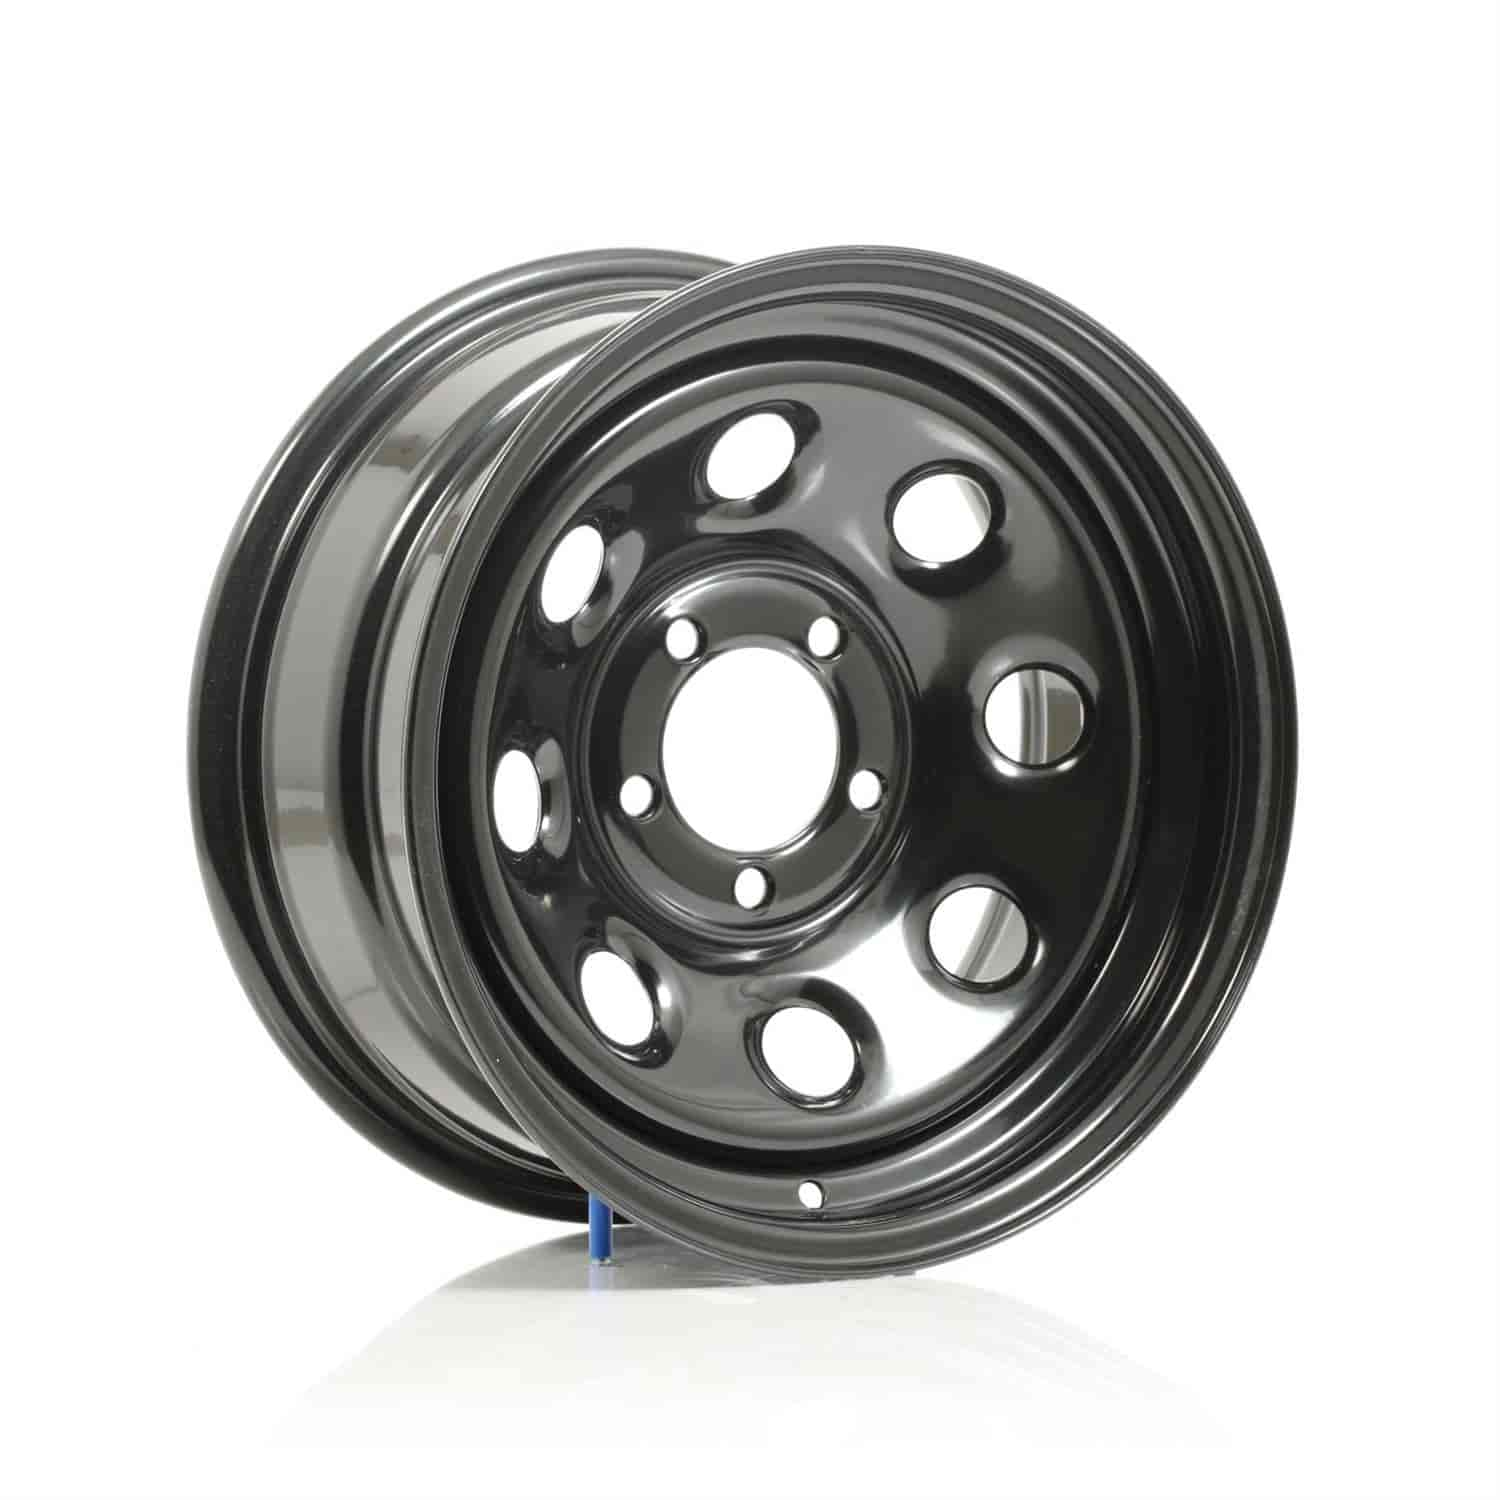 Cragar 3975434 - Cragar Black Soft 8 Wheels